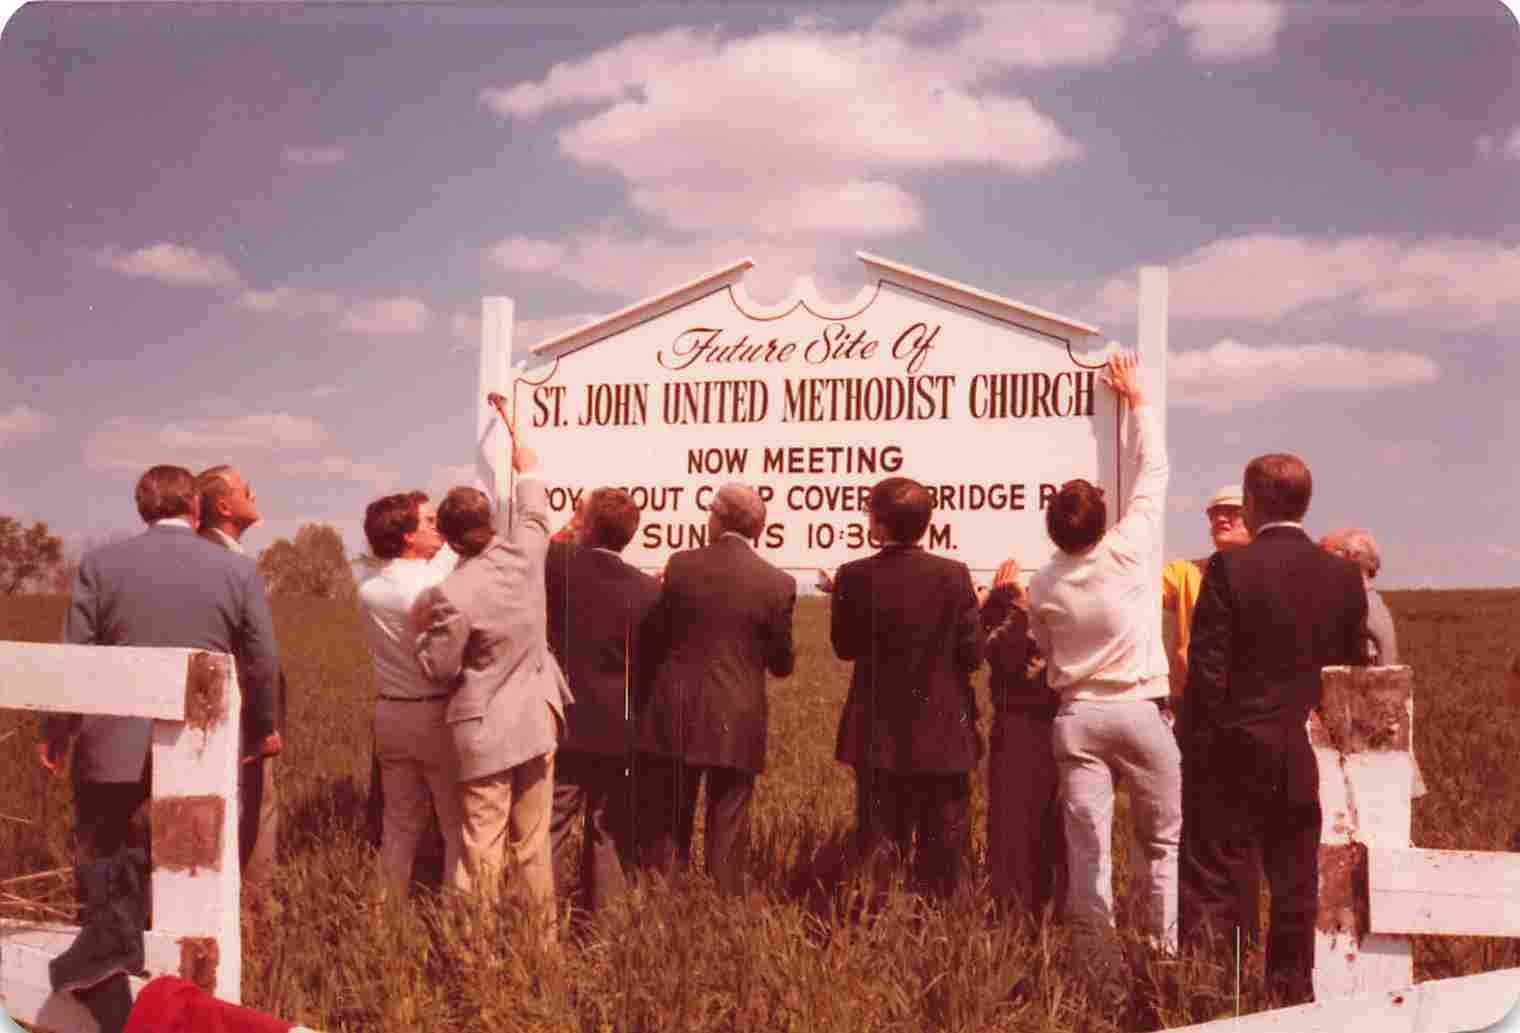 Picture of sign for future site of St John United Methodist Church